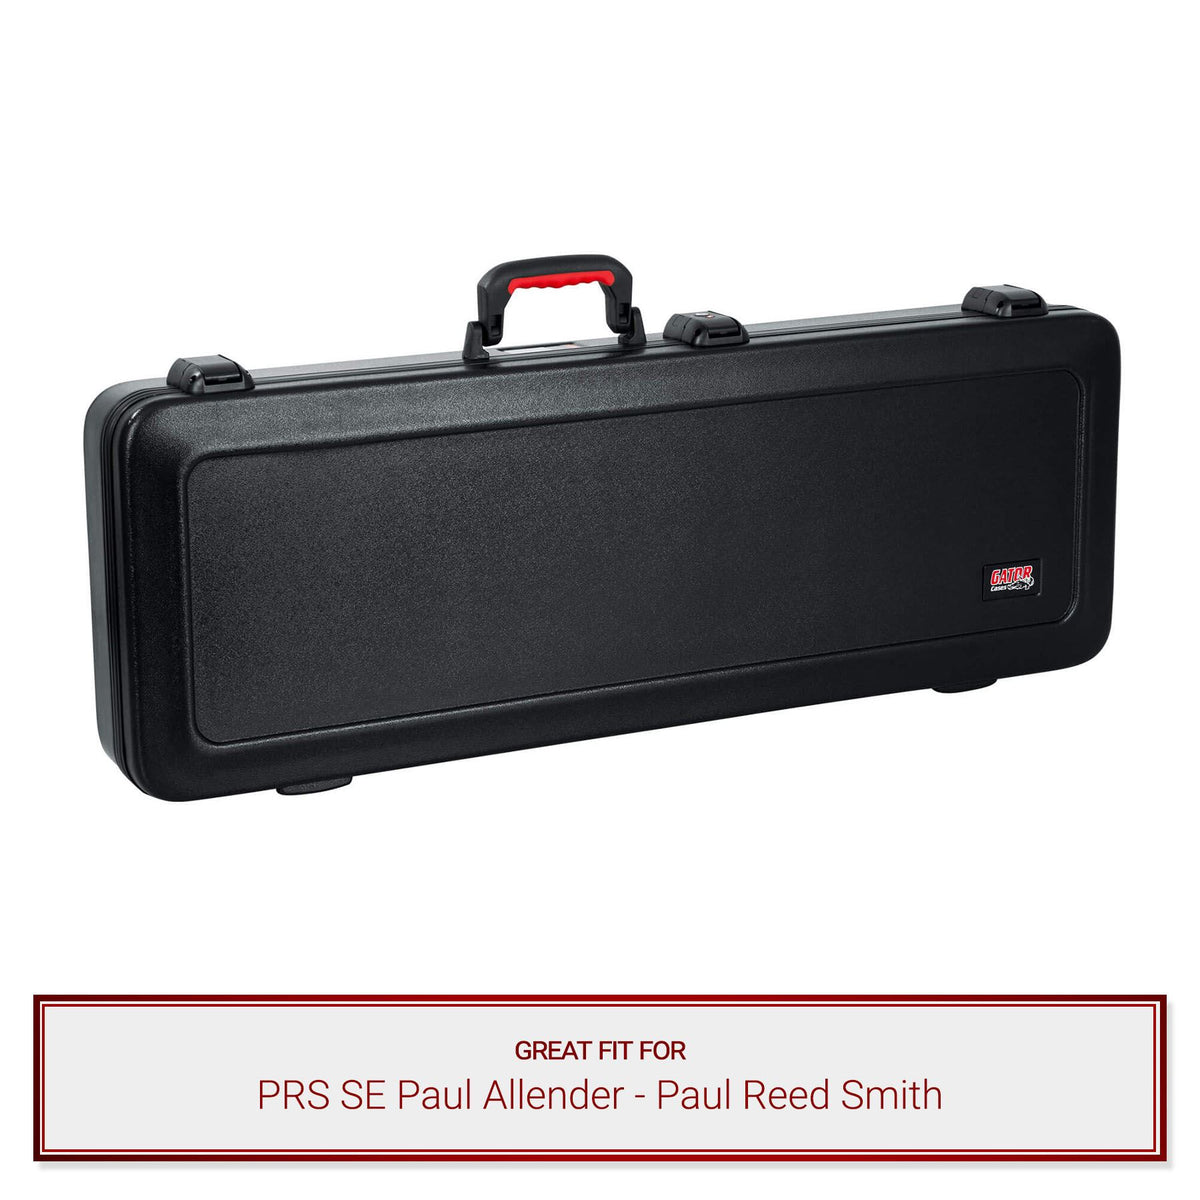 Gator TSA Electric Case fits PRS SE Paul Allender - Paul Reed Smith